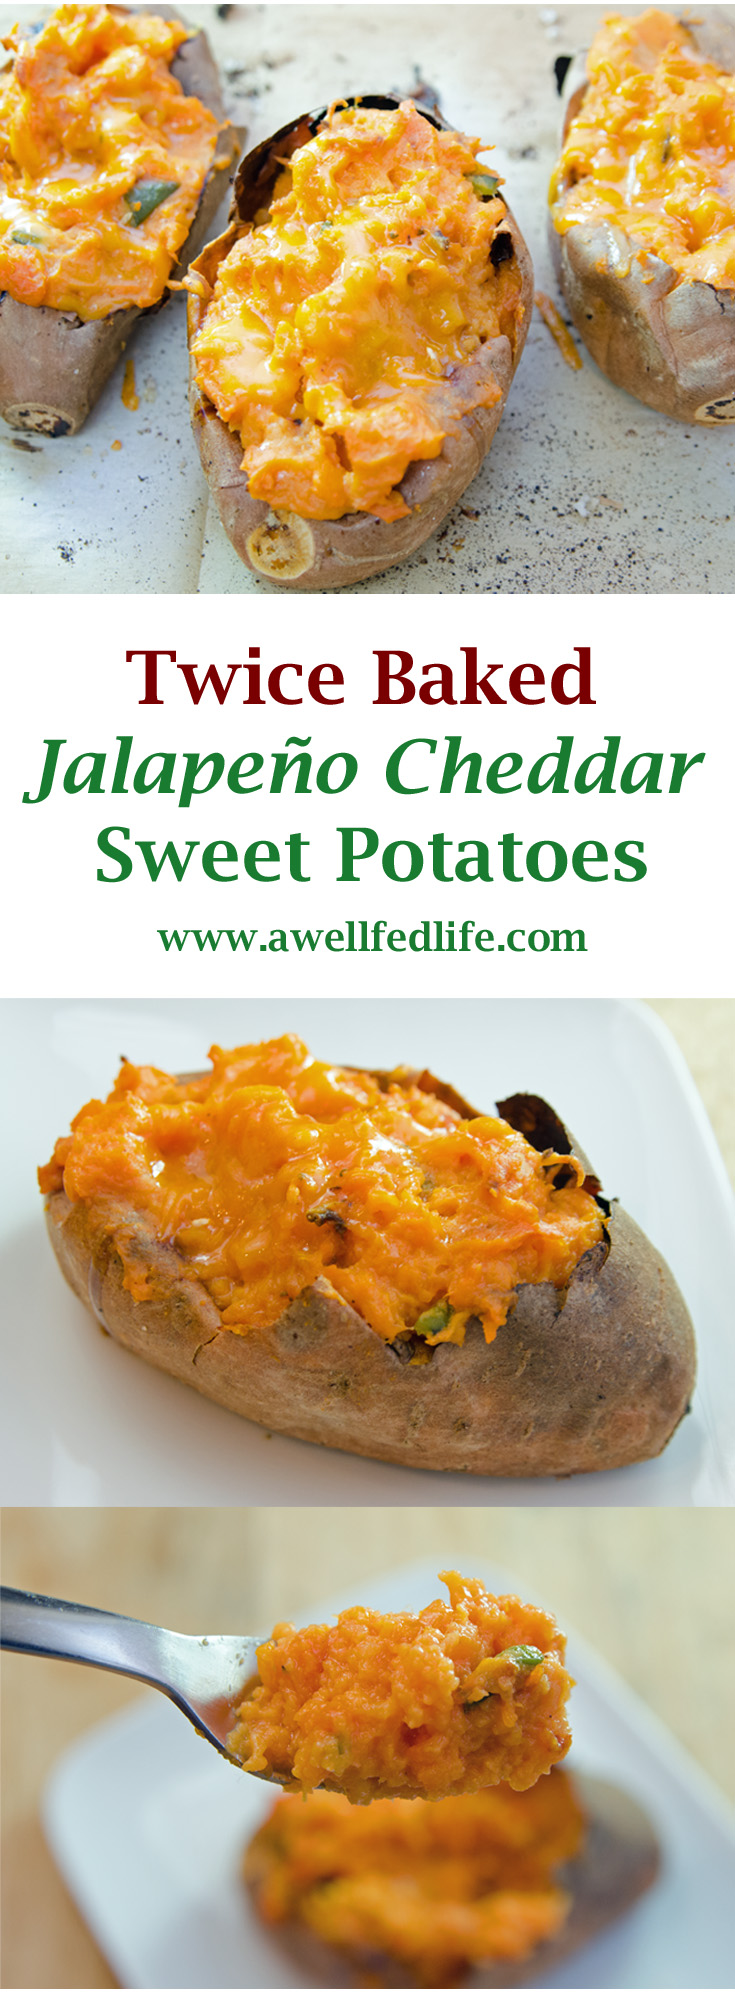 Twice Baked Sweet Potatoes Pinterest